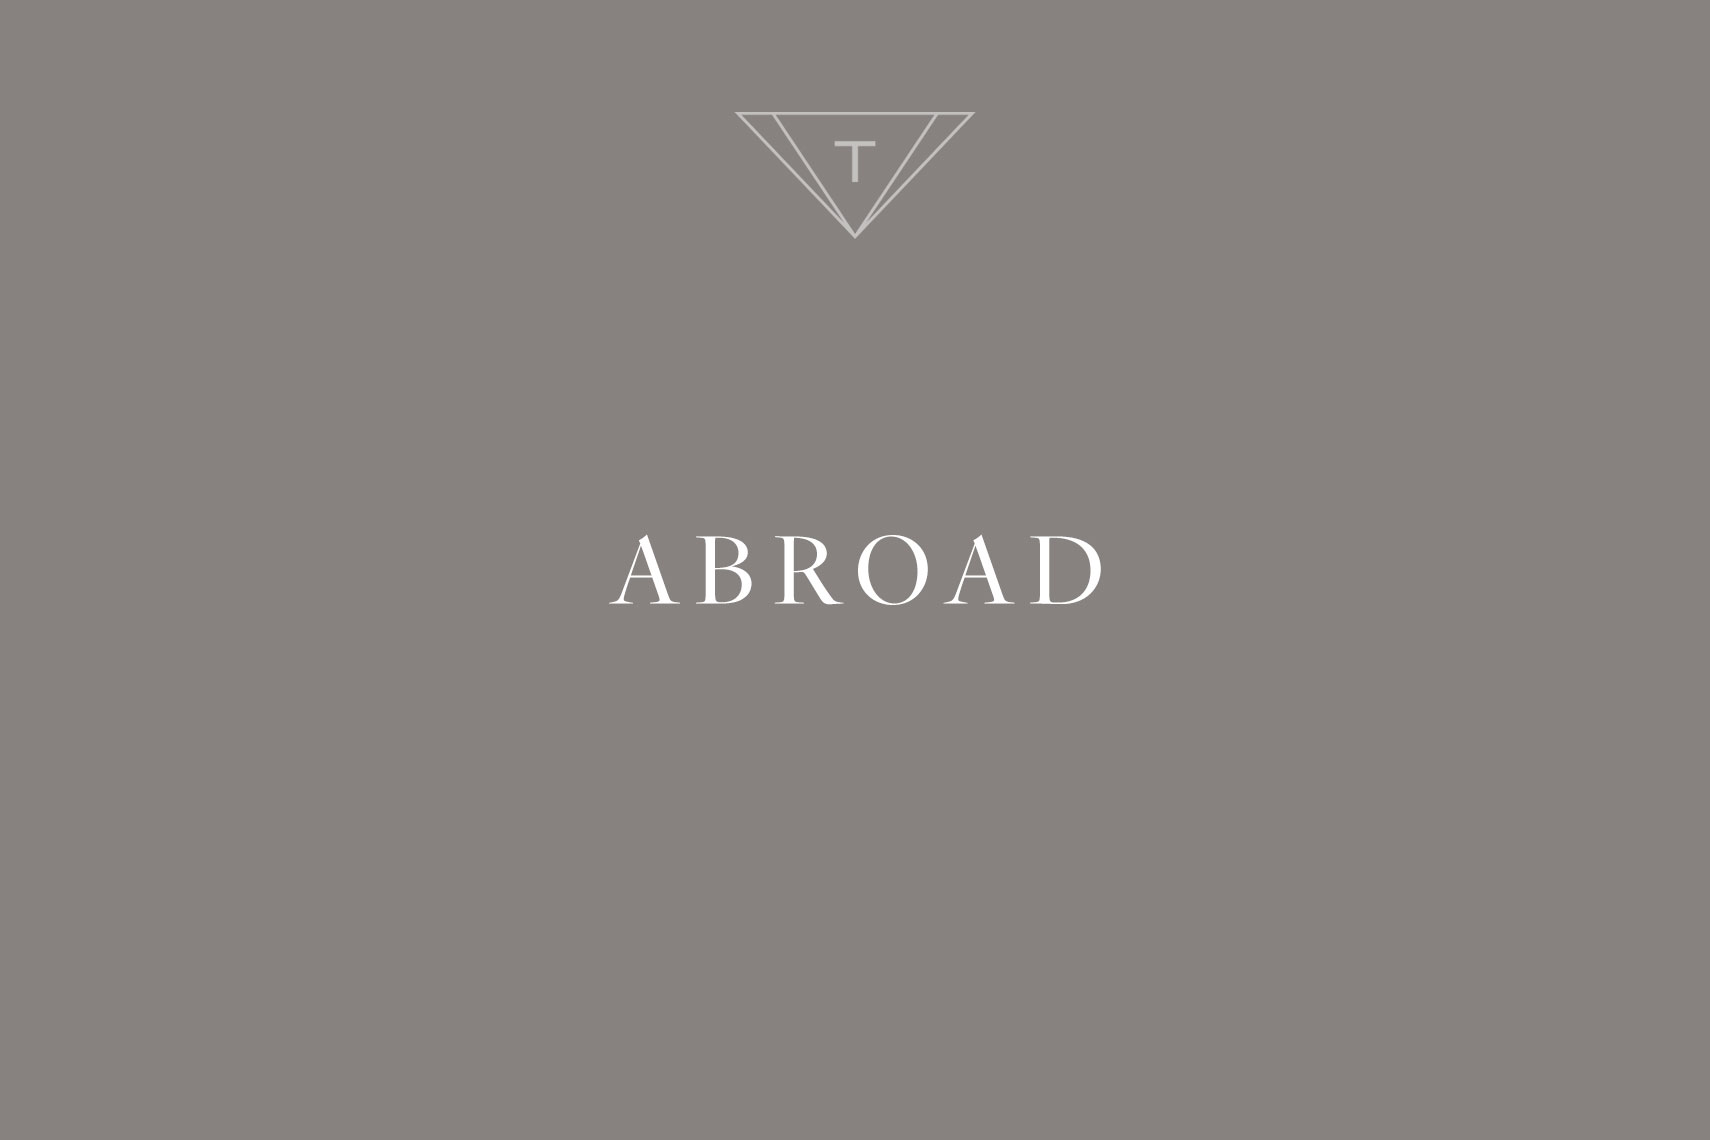 abroad_title